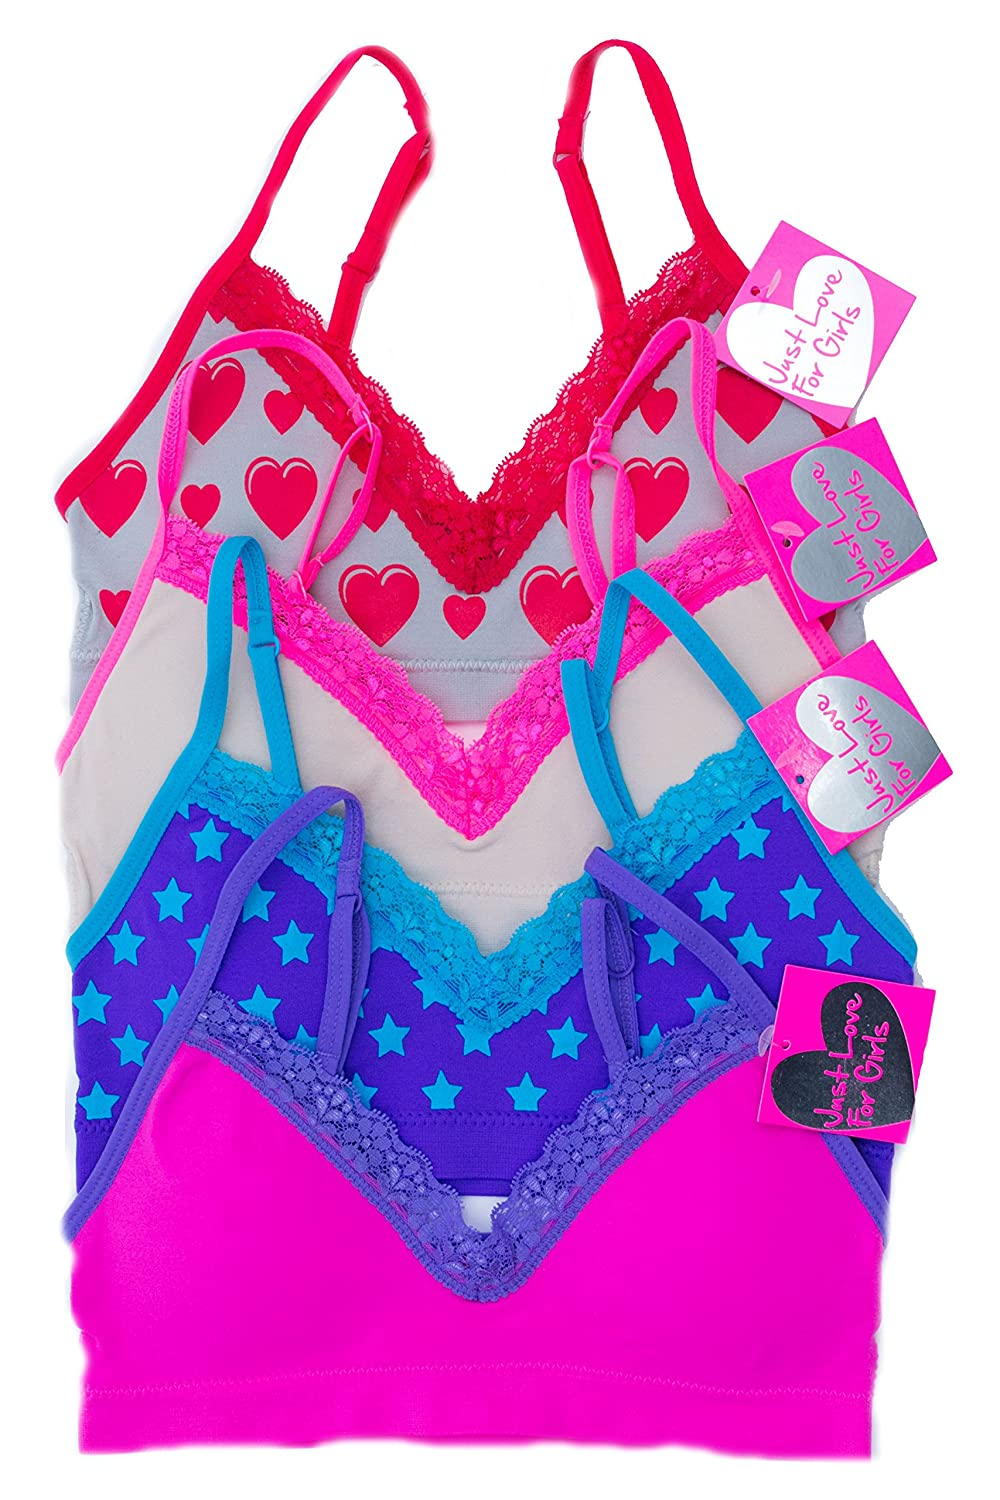 Just Love Girls Bras Pack of 4